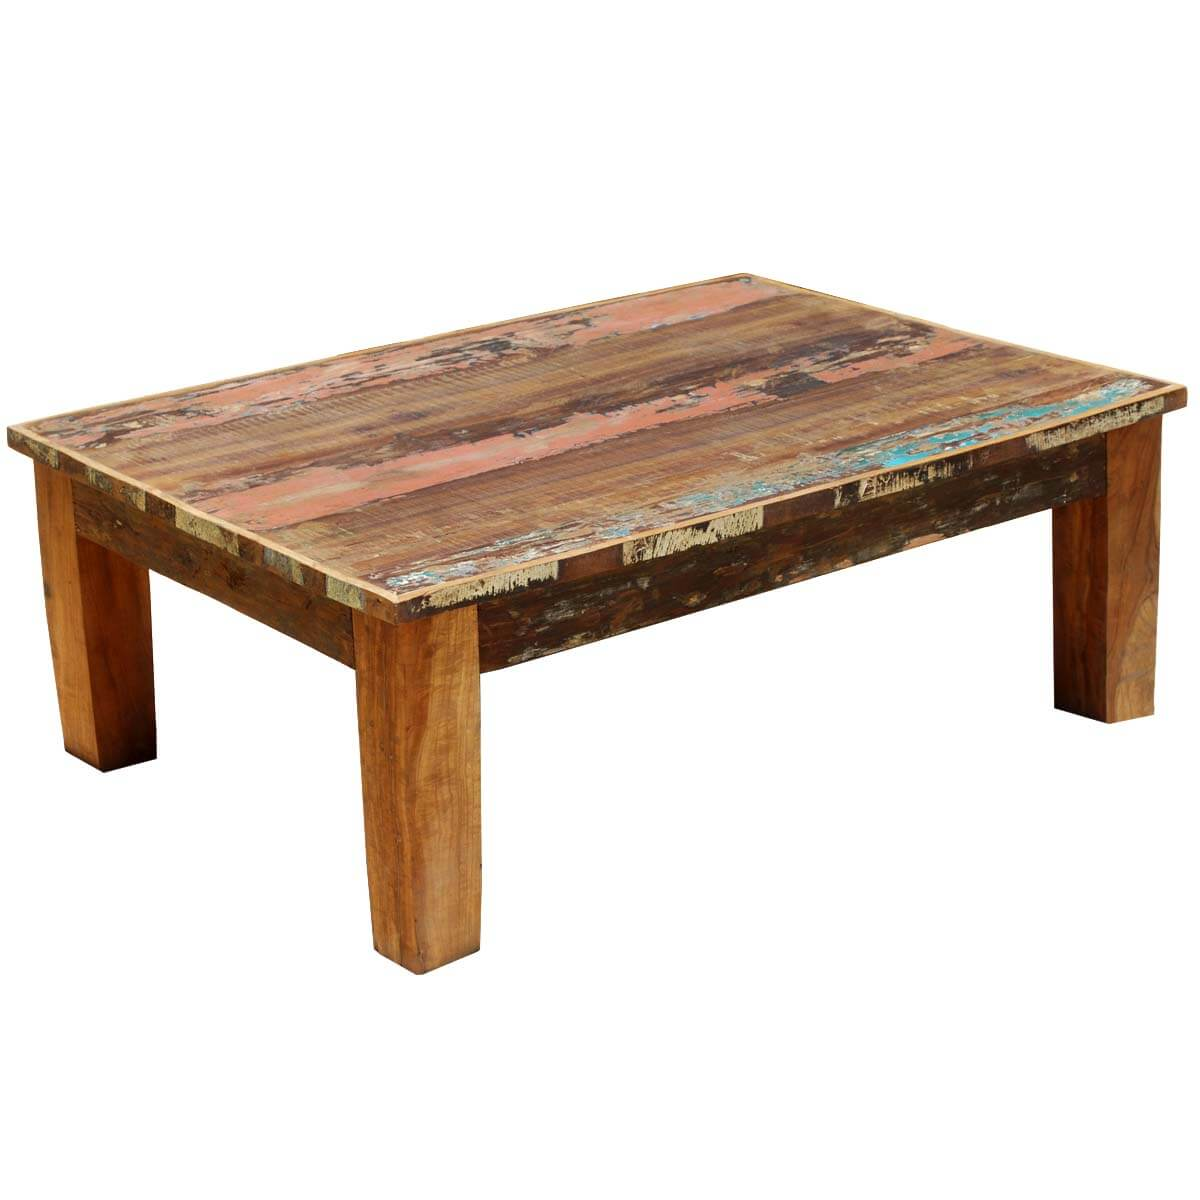 Appalachian rustic mixed reclaimed wood coffee table Rustic wooden coffee tables